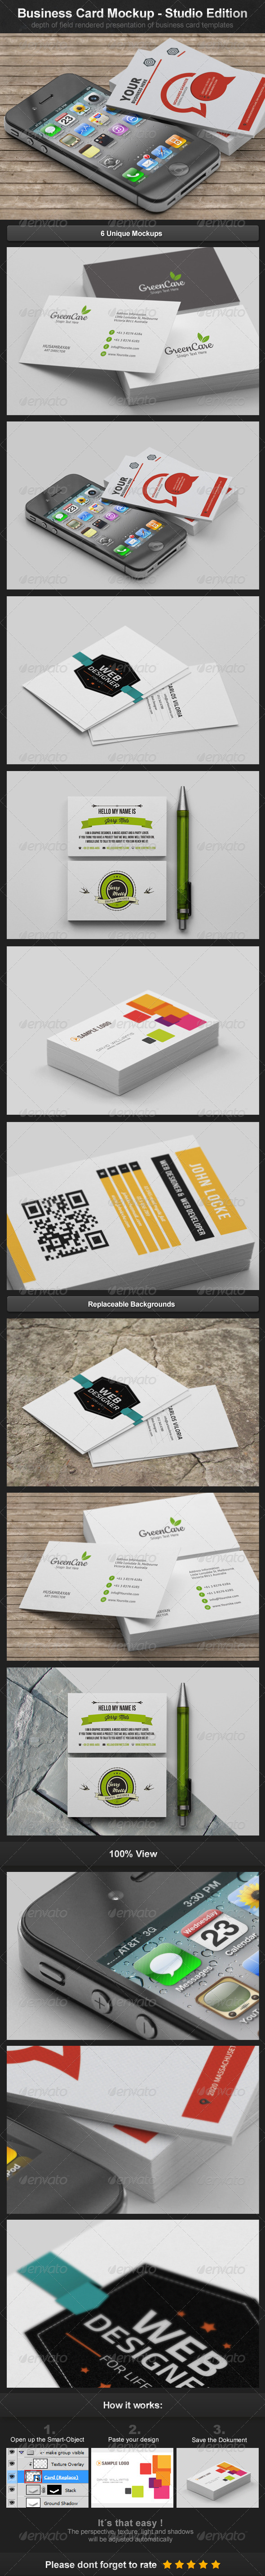 GraphicRiver Business Card Mockups Studio Edition 3818663